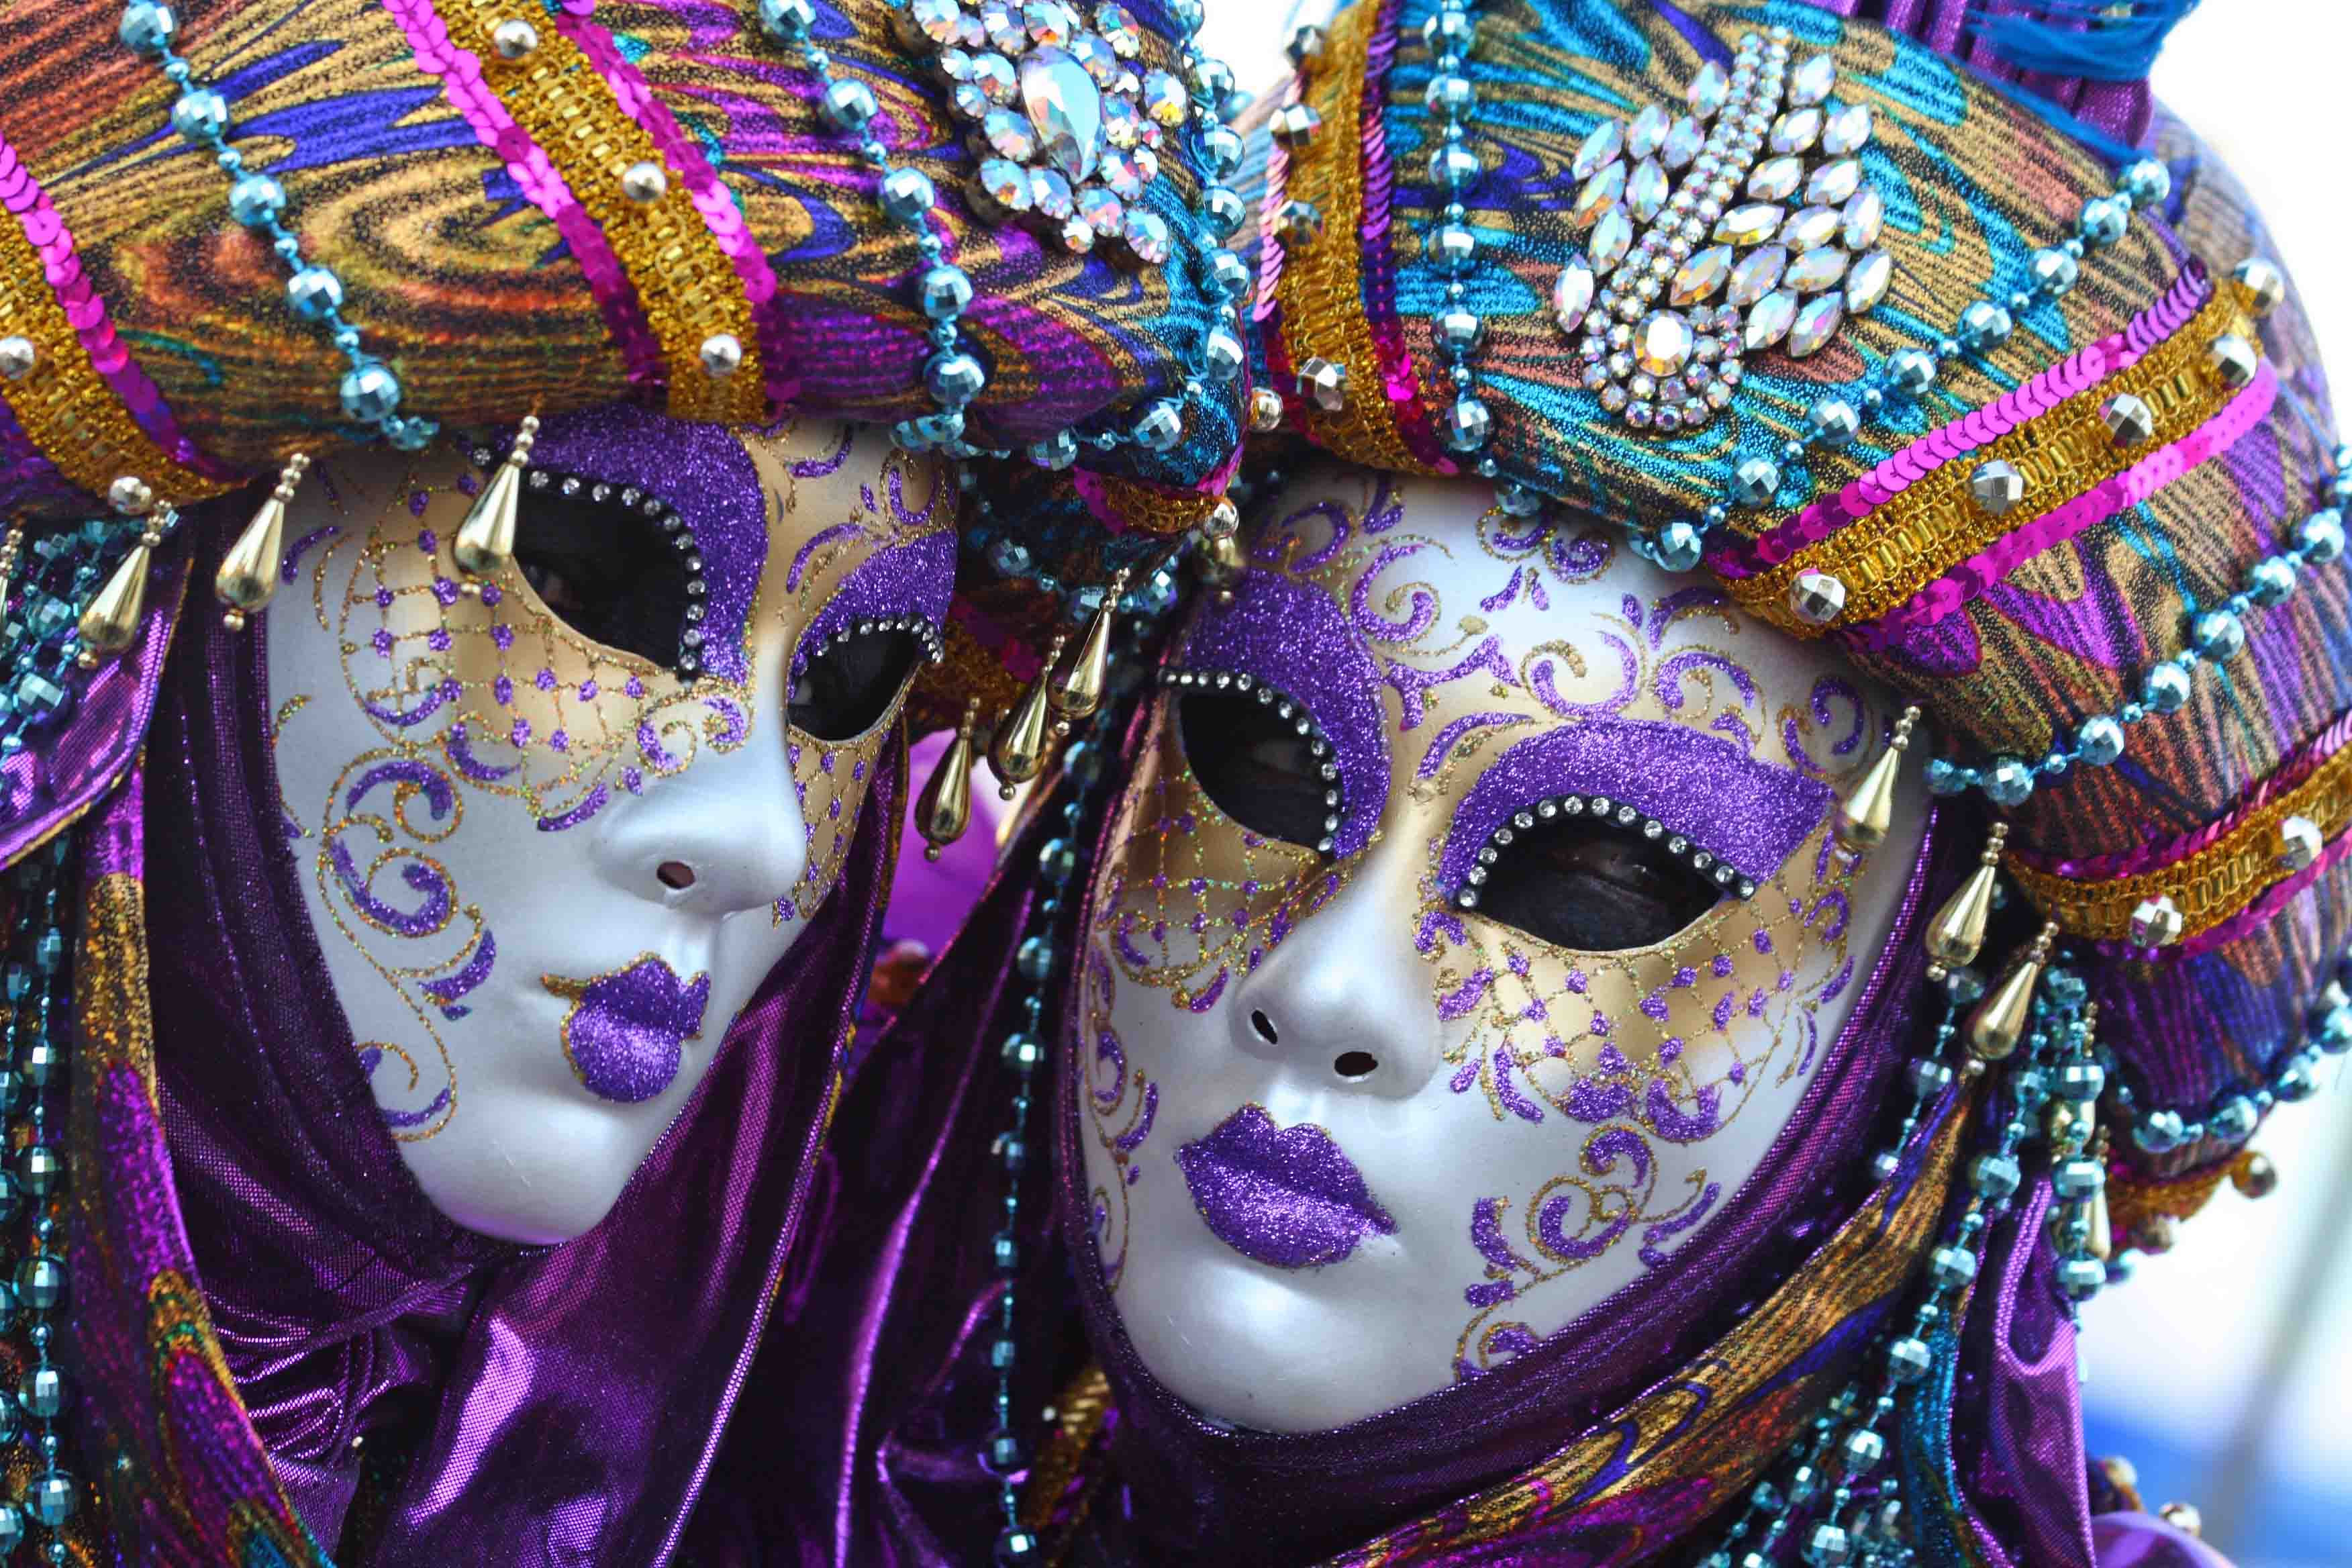 Homemade mardi gras headpieces